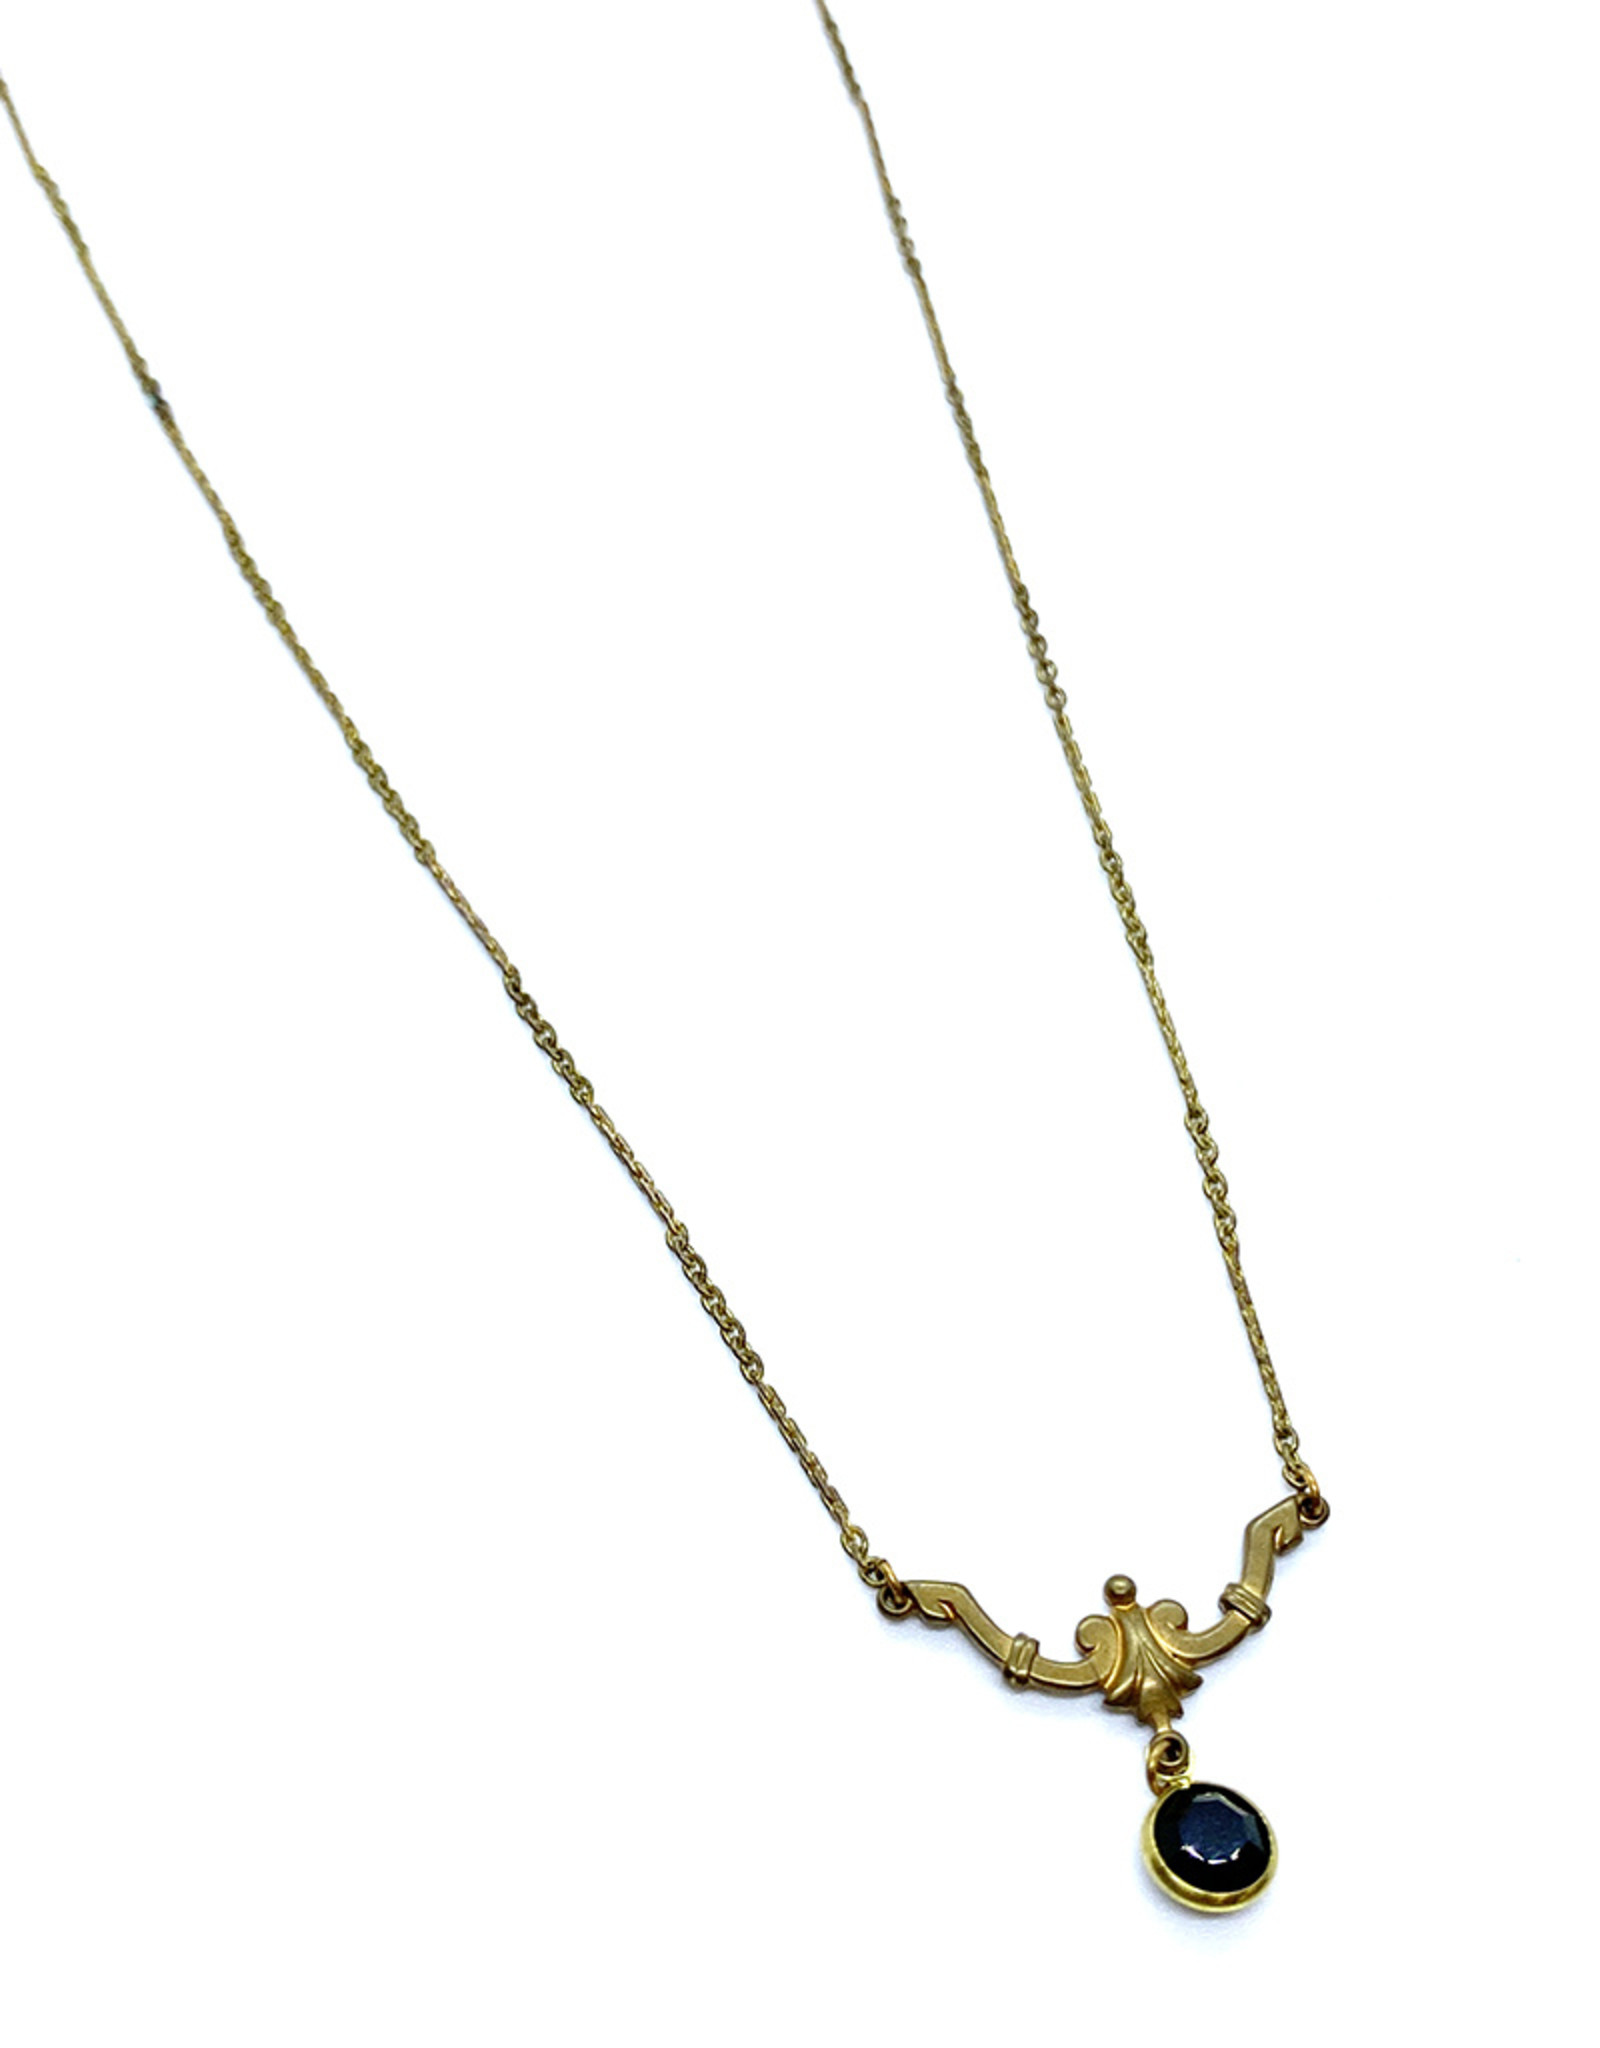 kizmet jewelry Black Jewel Necklace by Kizmet Jewelry